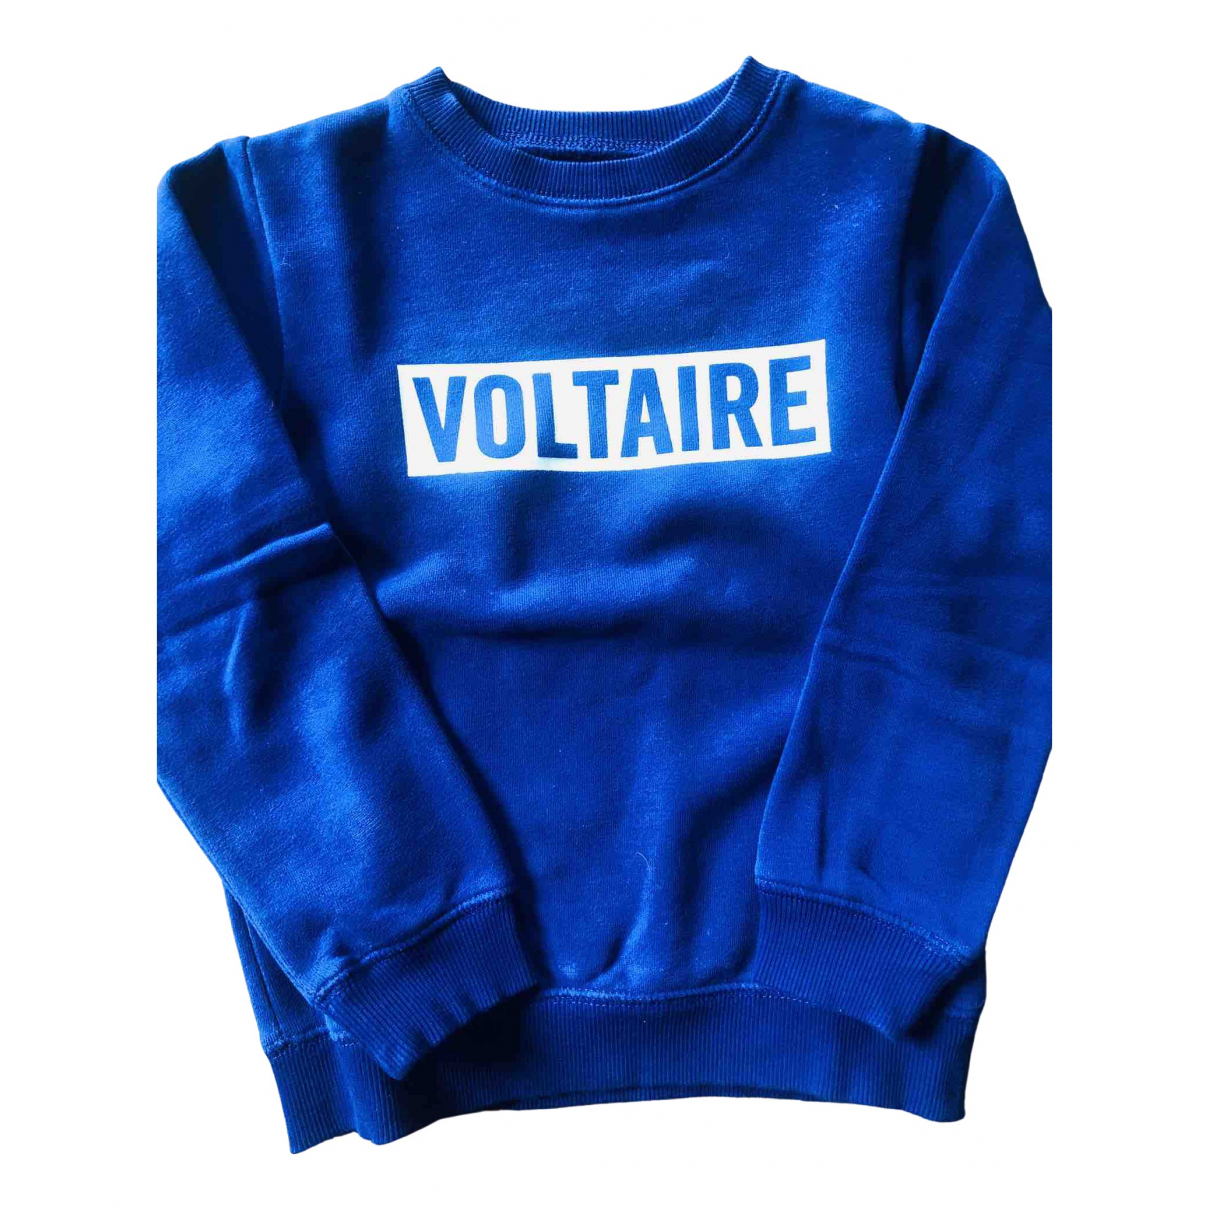 Zadig & Voltaire N Blue Cotton Knitwear for Kids 6 years - up to 114cm FR